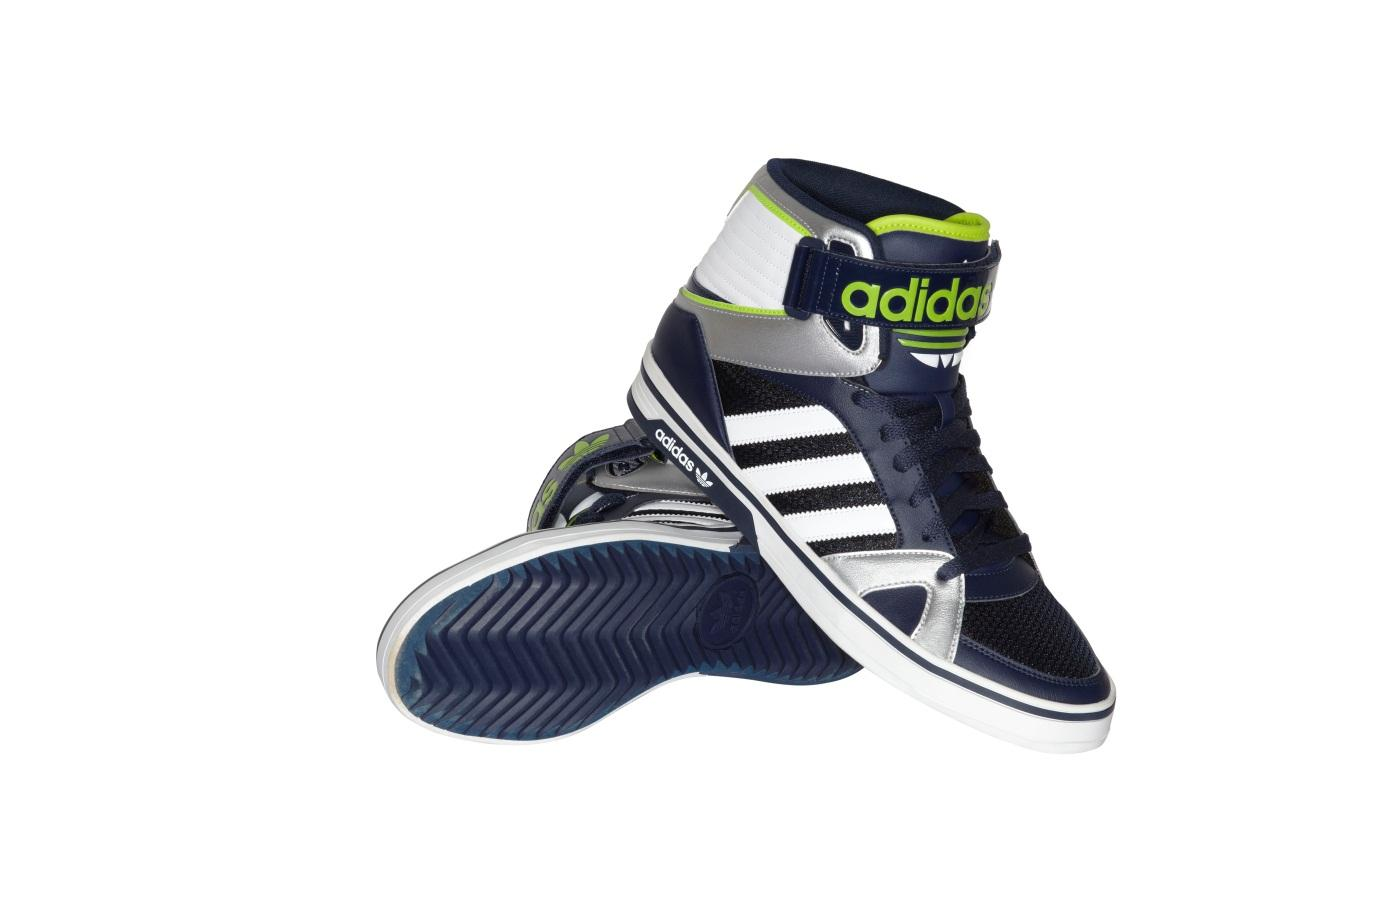 By Dogg Sponsorizzato Video Locker E Adidas Diver Foot Snoop Space XnAnfWT